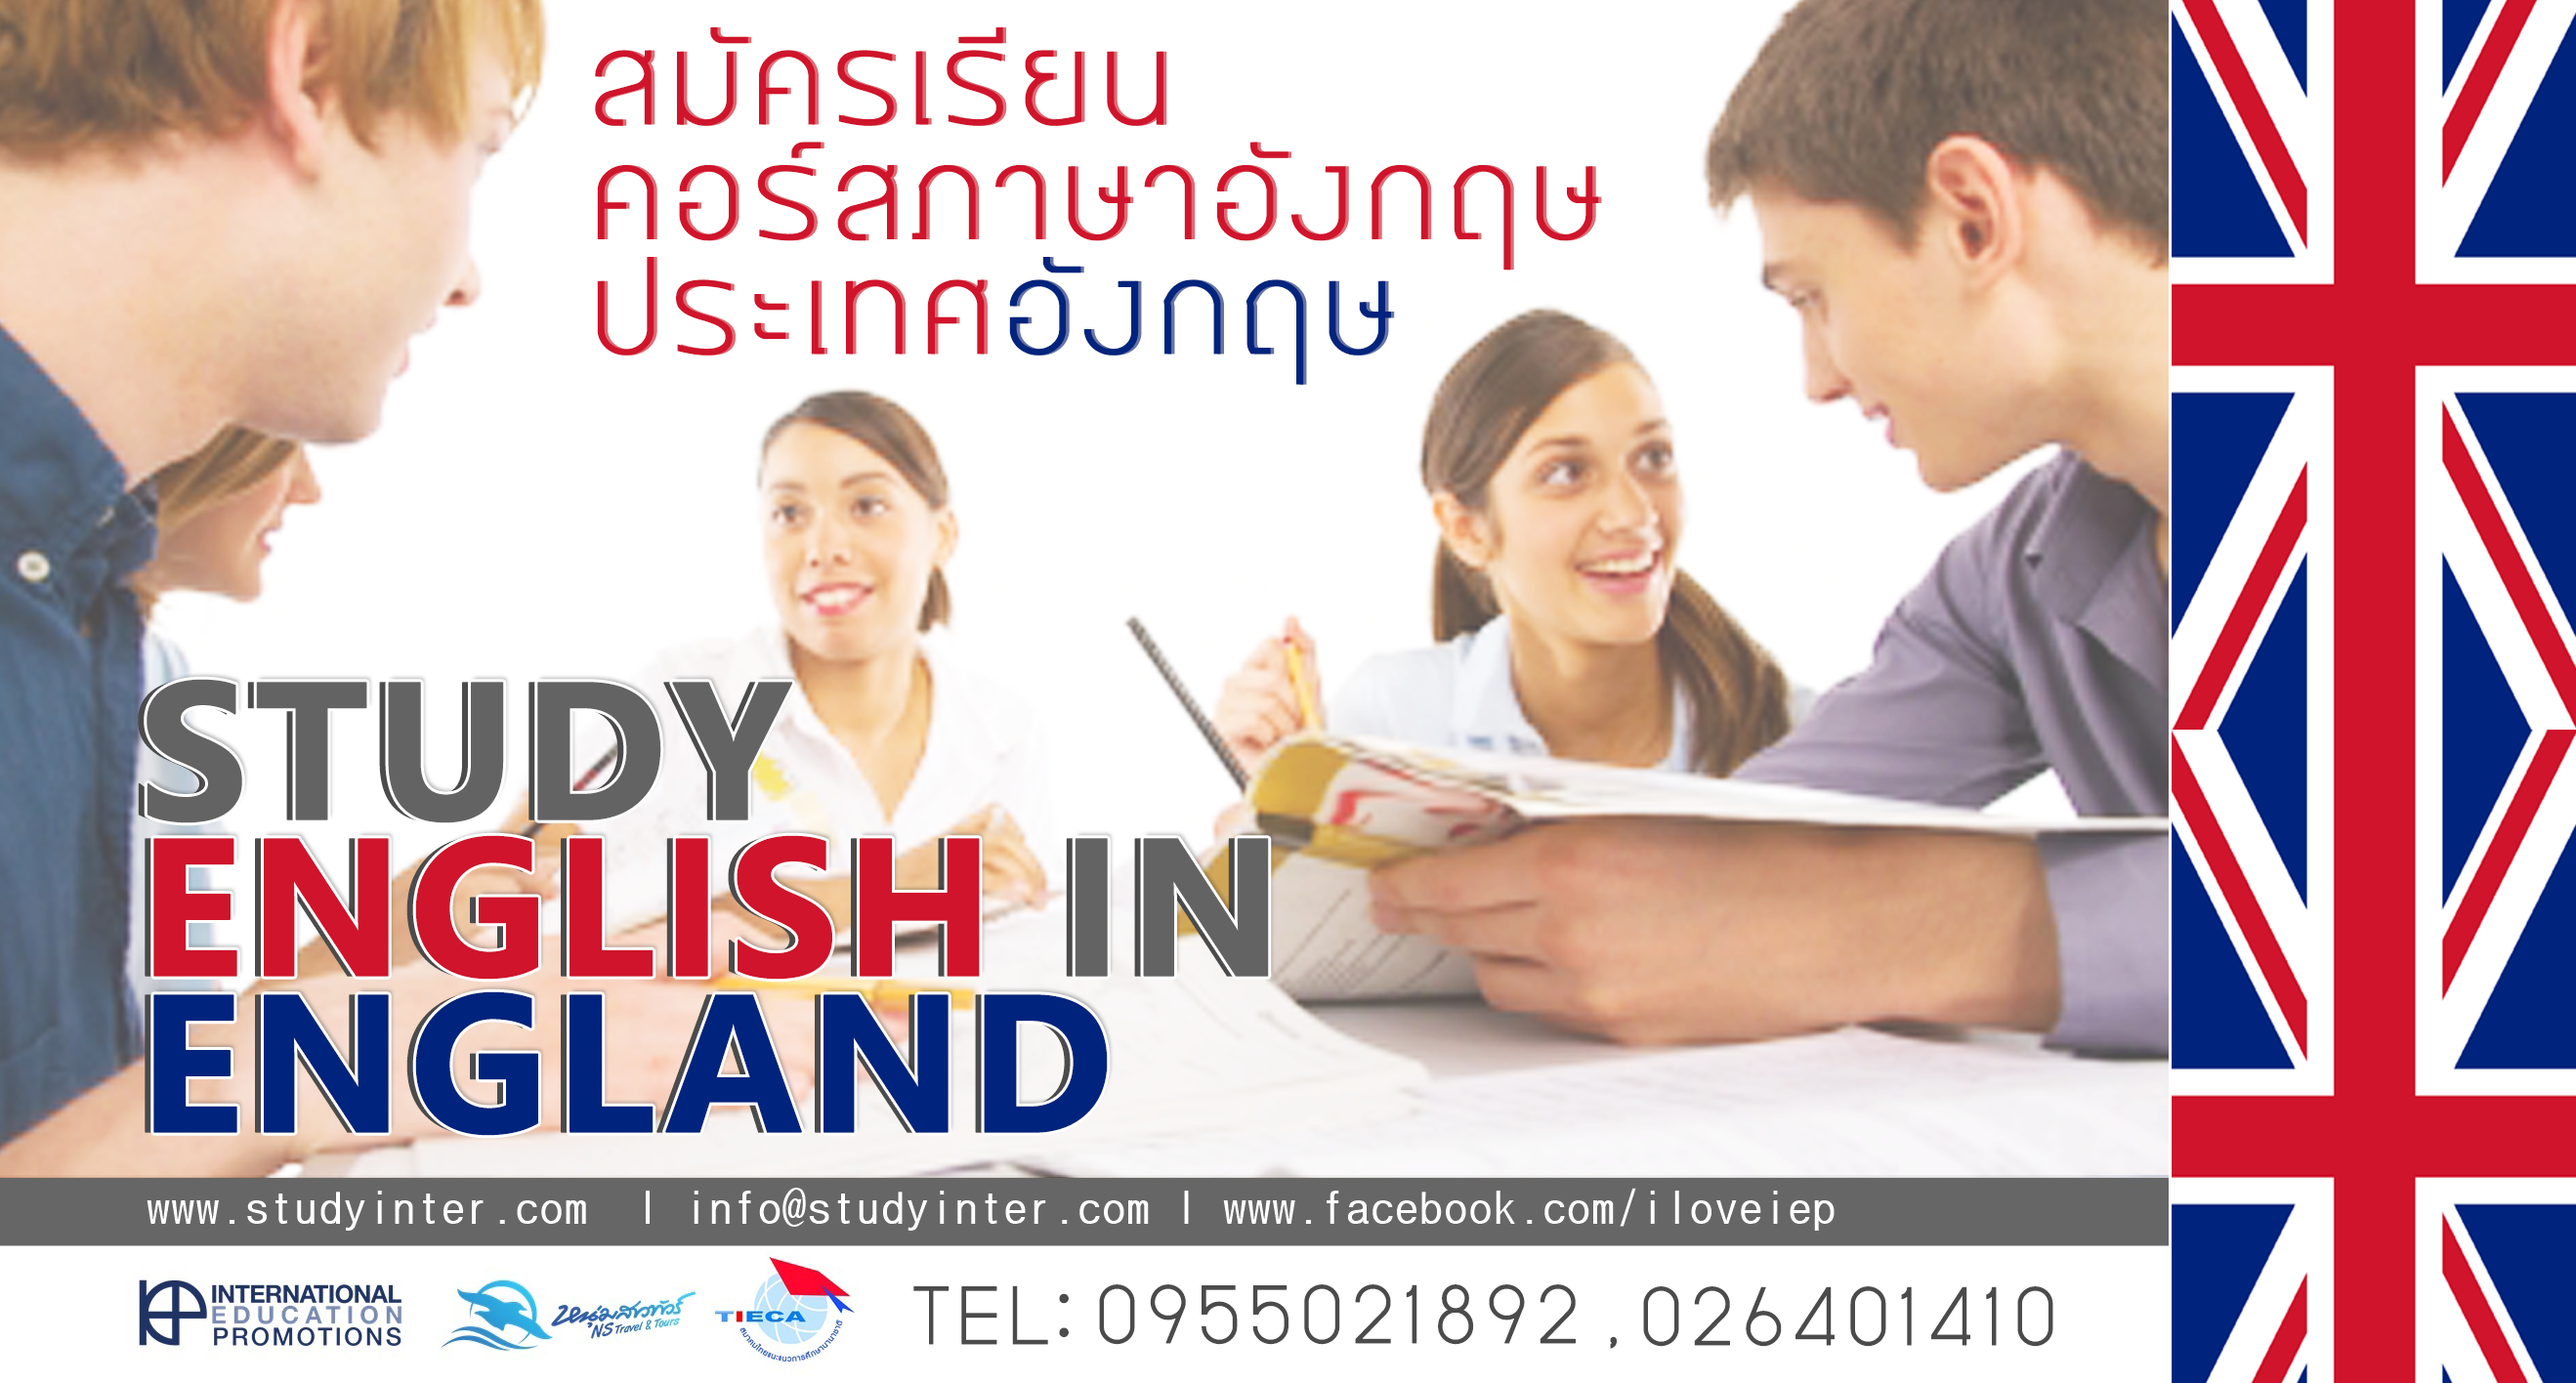 StudyEnglishinEnglandiep